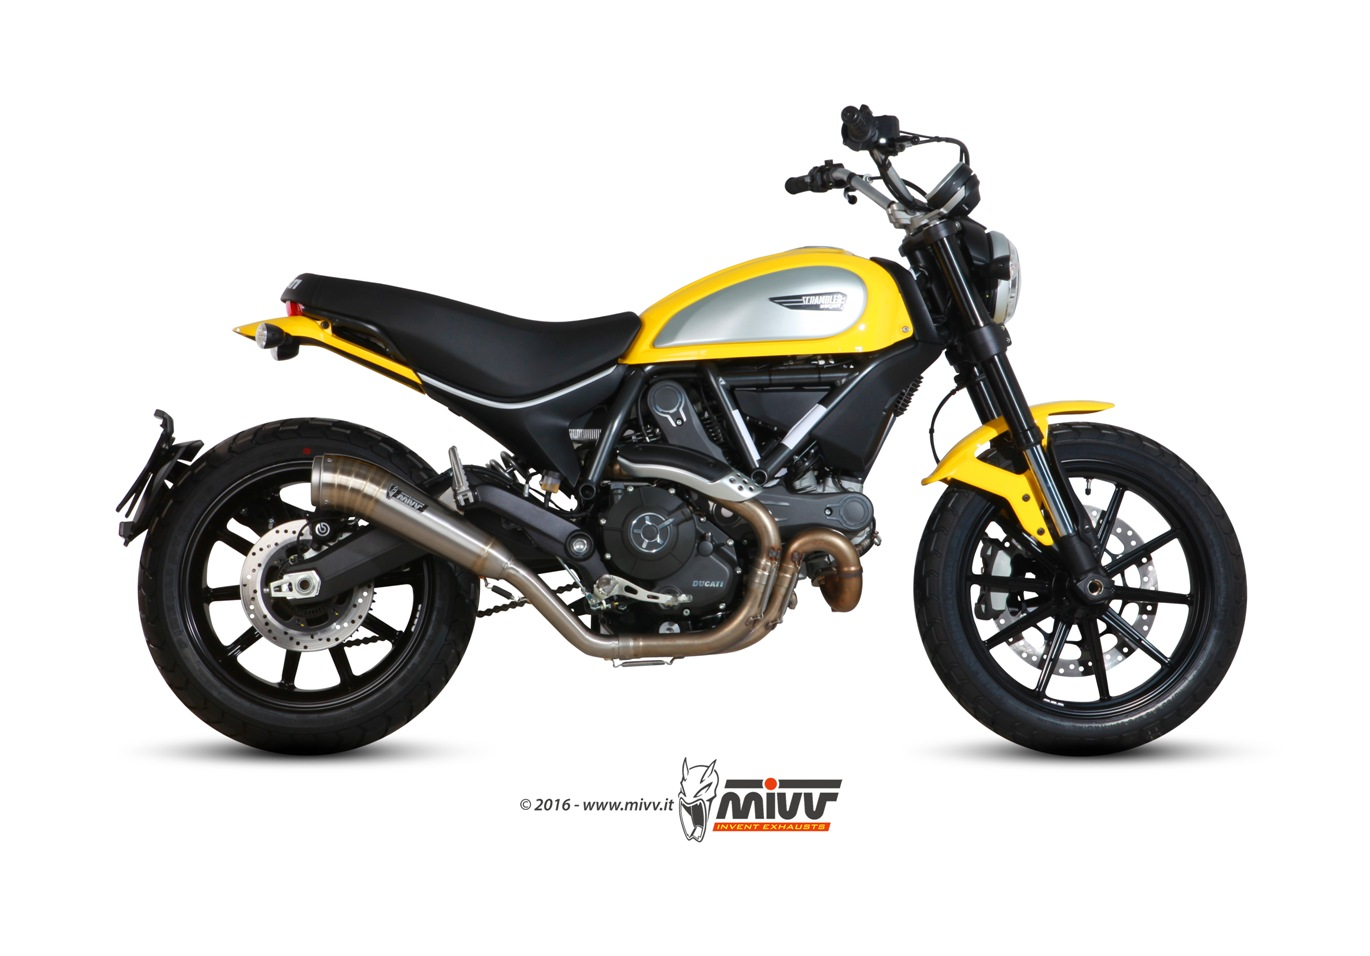 ducati scrambler 800 2016 16 slip on auspuff mivv. Black Bedroom Furniture Sets. Home Design Ideas